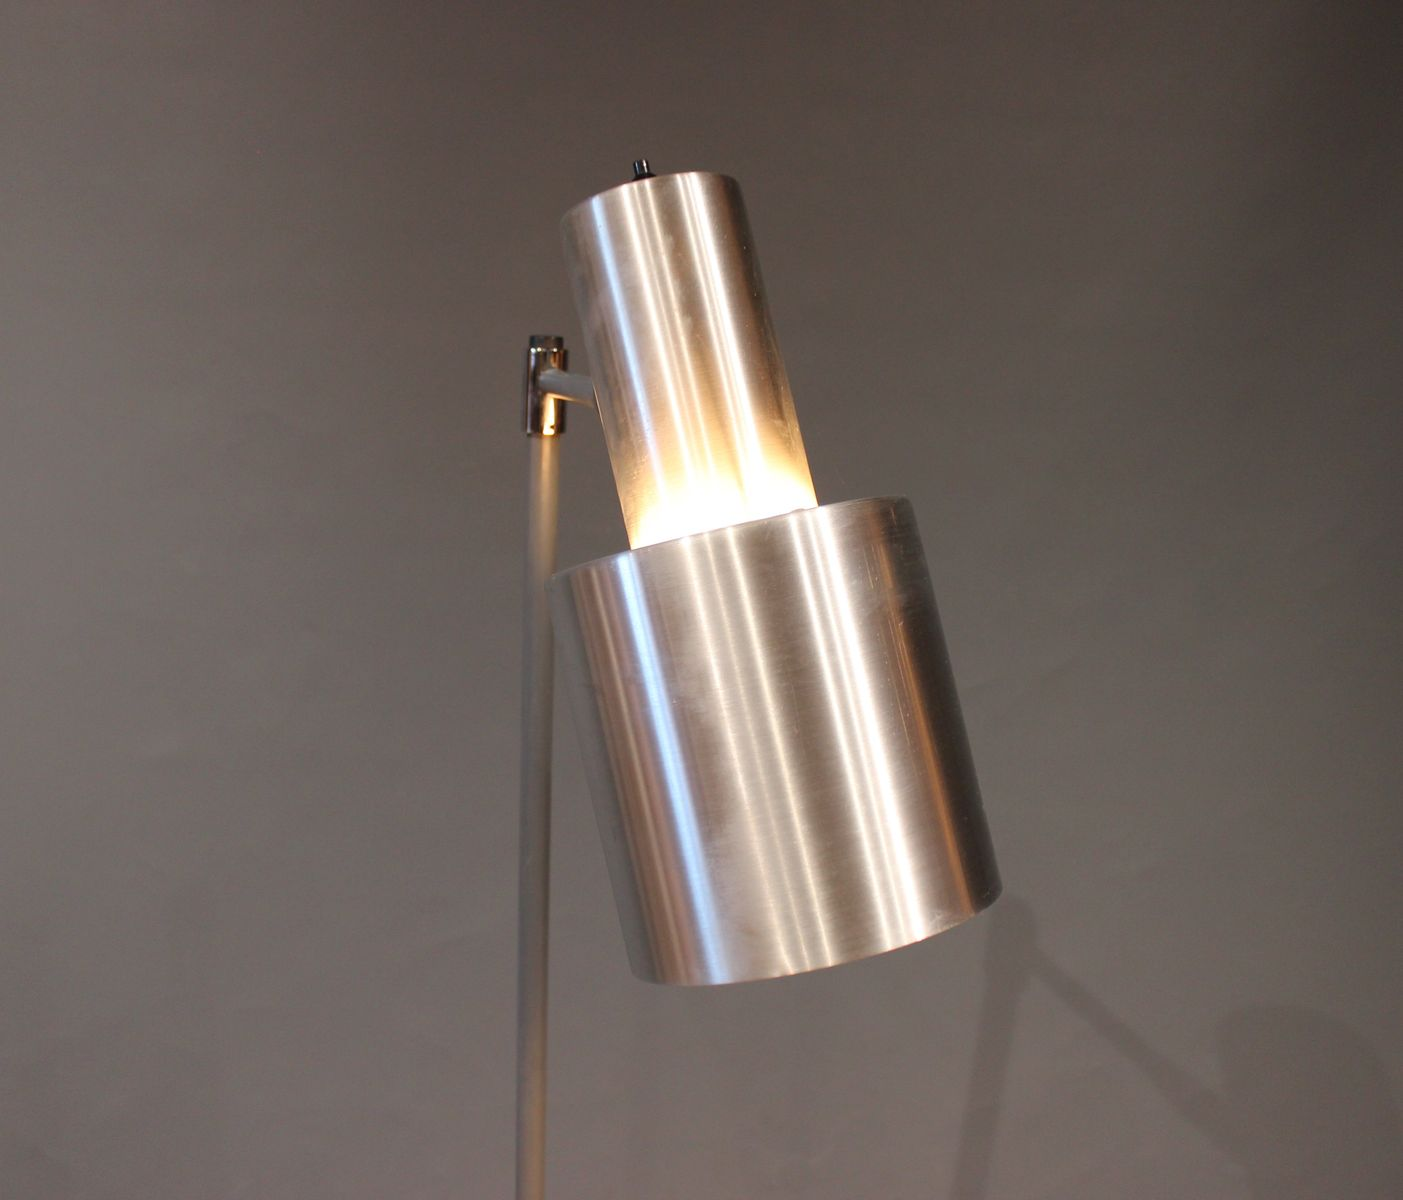 Large mid century studio model stainless steel floor lamp by jo large mid century studio model stainless steel floor lamp by jo hammerborg aloadofball Image collections